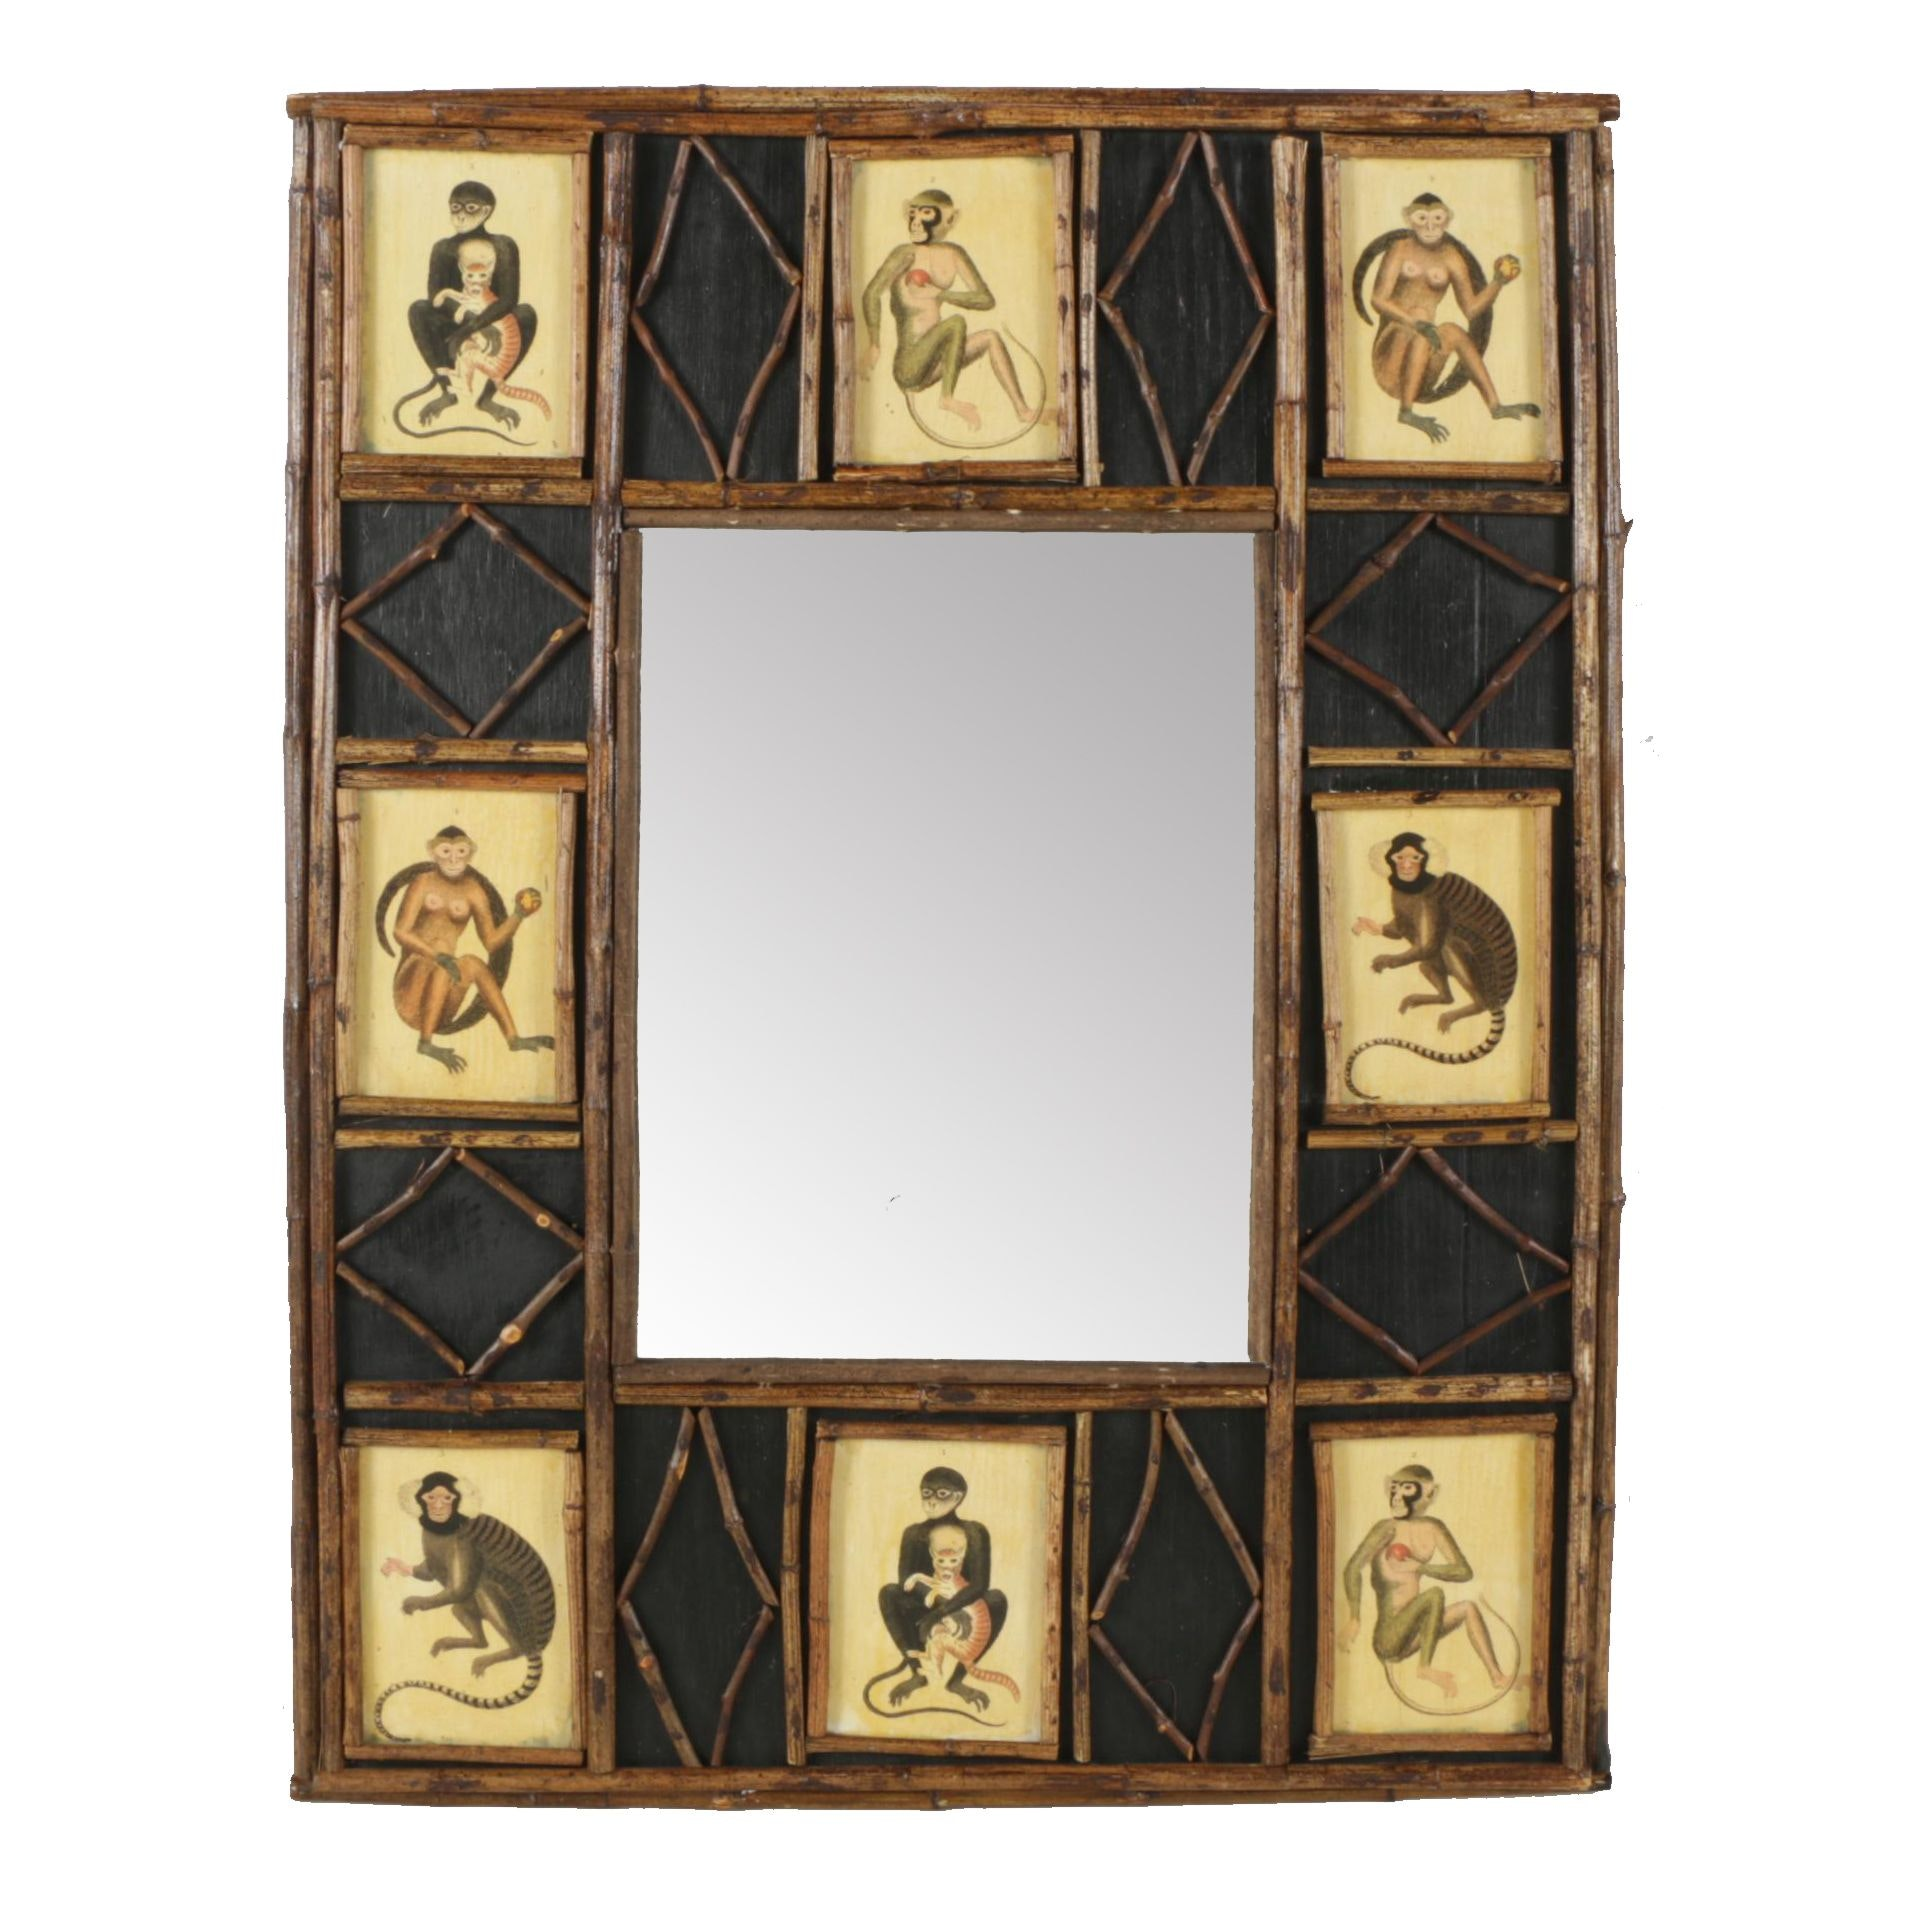 Wooden Framed Wall Mirror with Monkey Motif